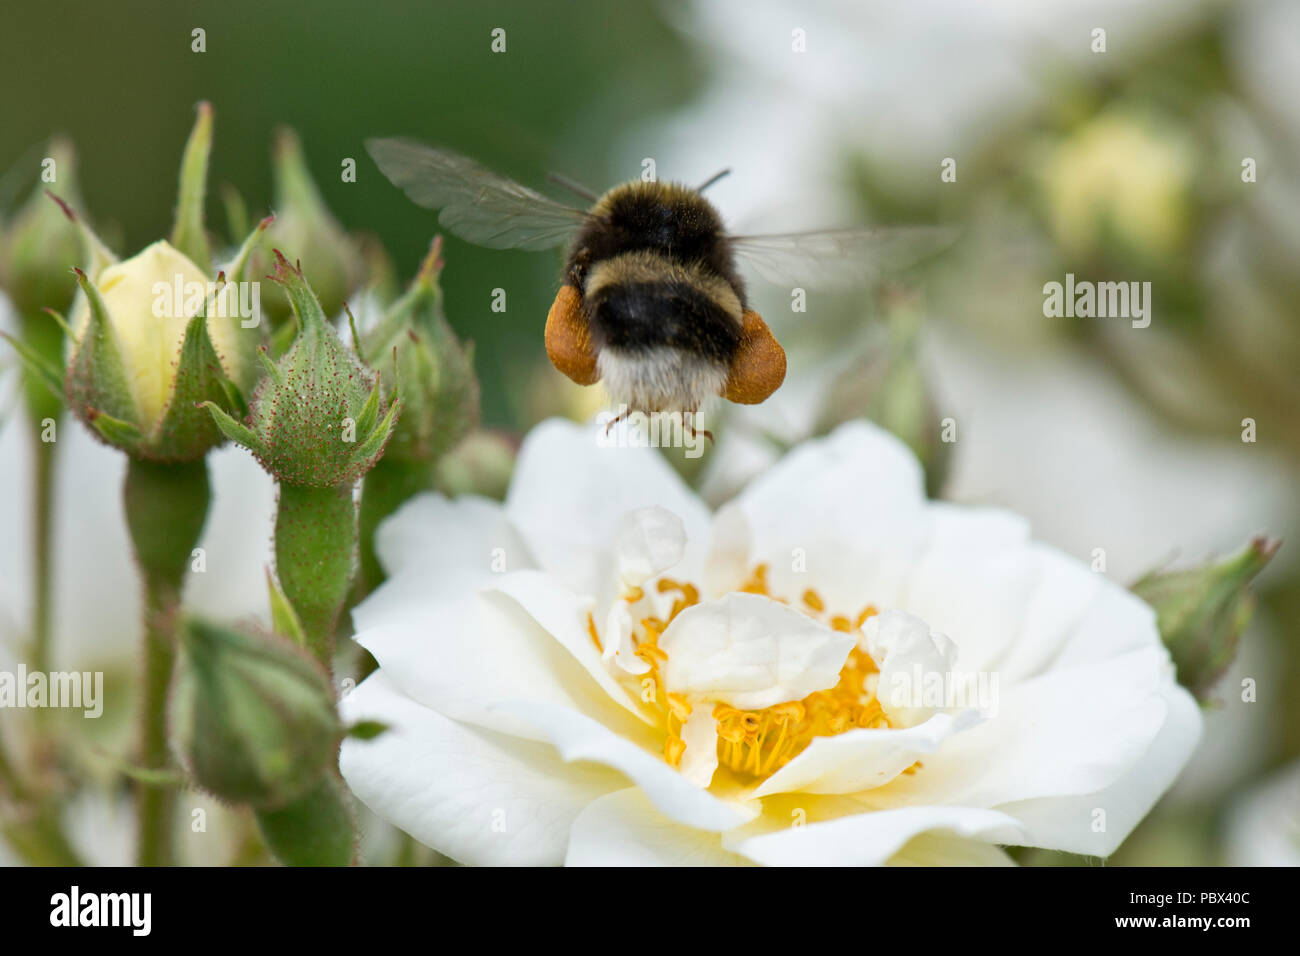 White-tailed bumblebee, Bombus lucorum, worker taking off fully laden after collecting pollen from a whjite rose flower, June Stock Photo